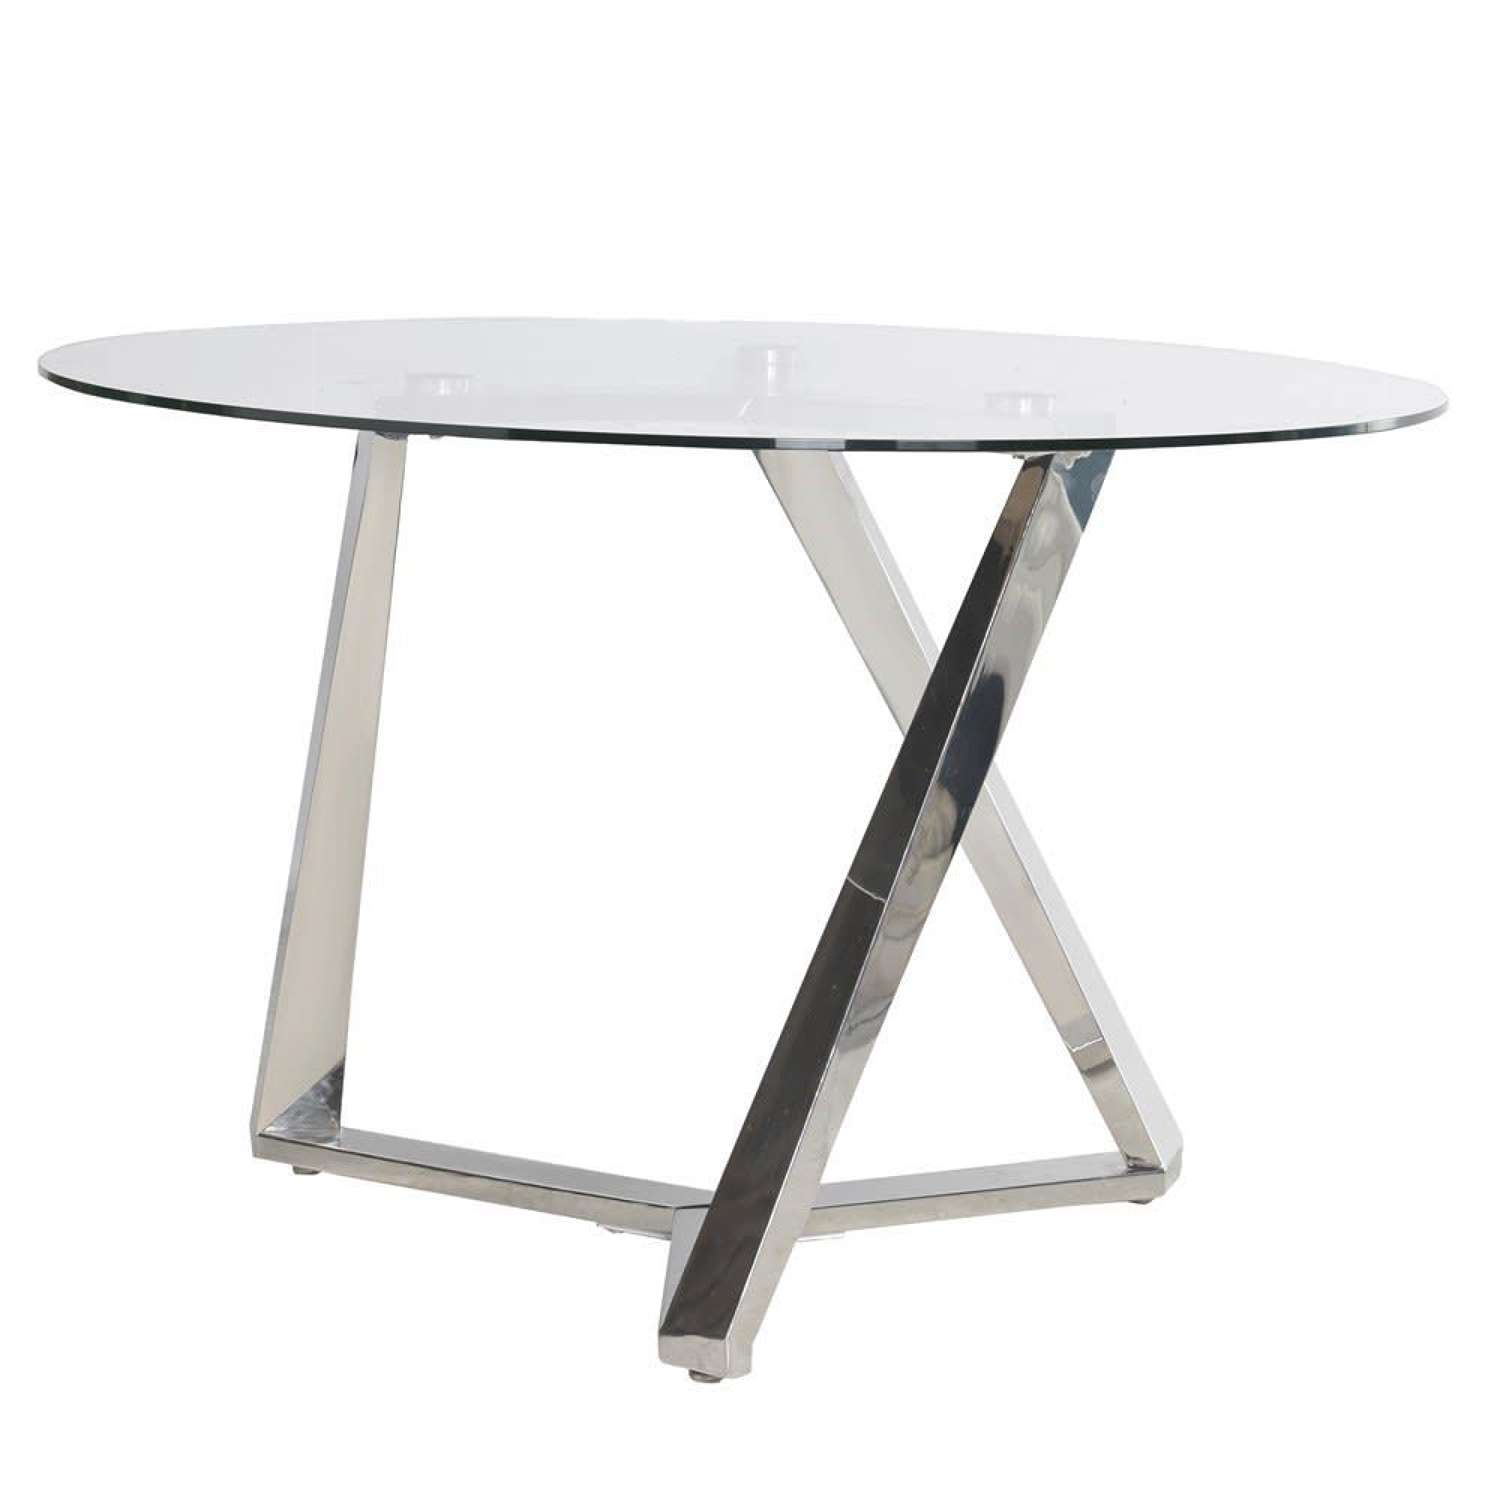 Stainless Steel Round Dining Table with Glass Top